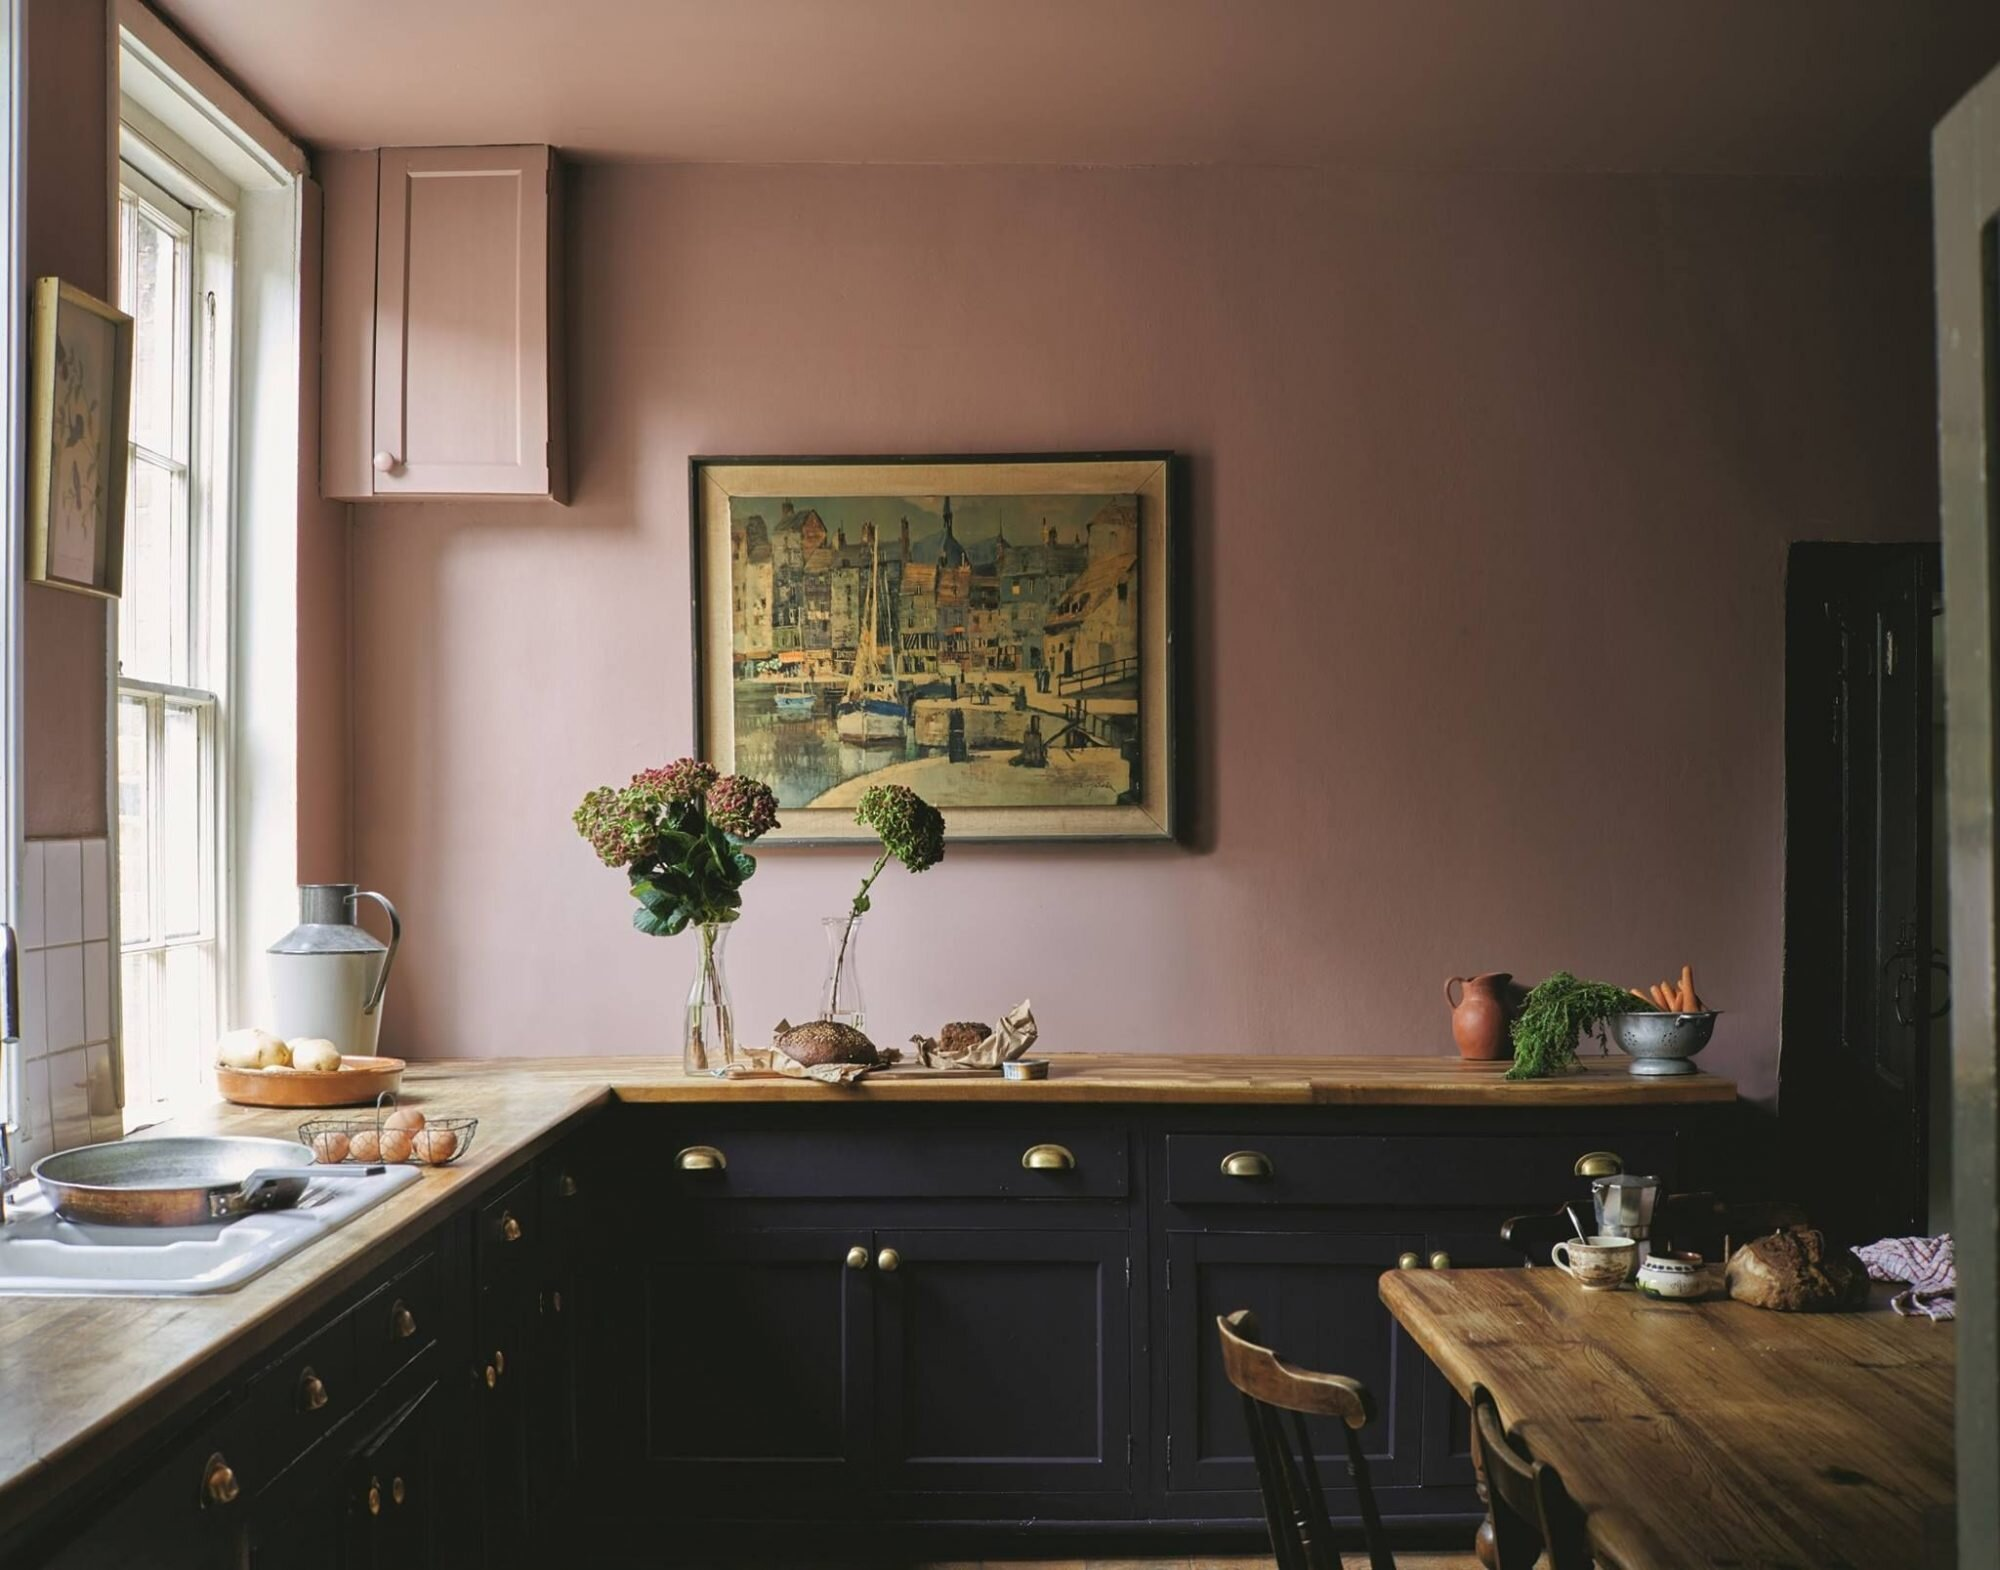 Rose pink and black kitchen cabinets